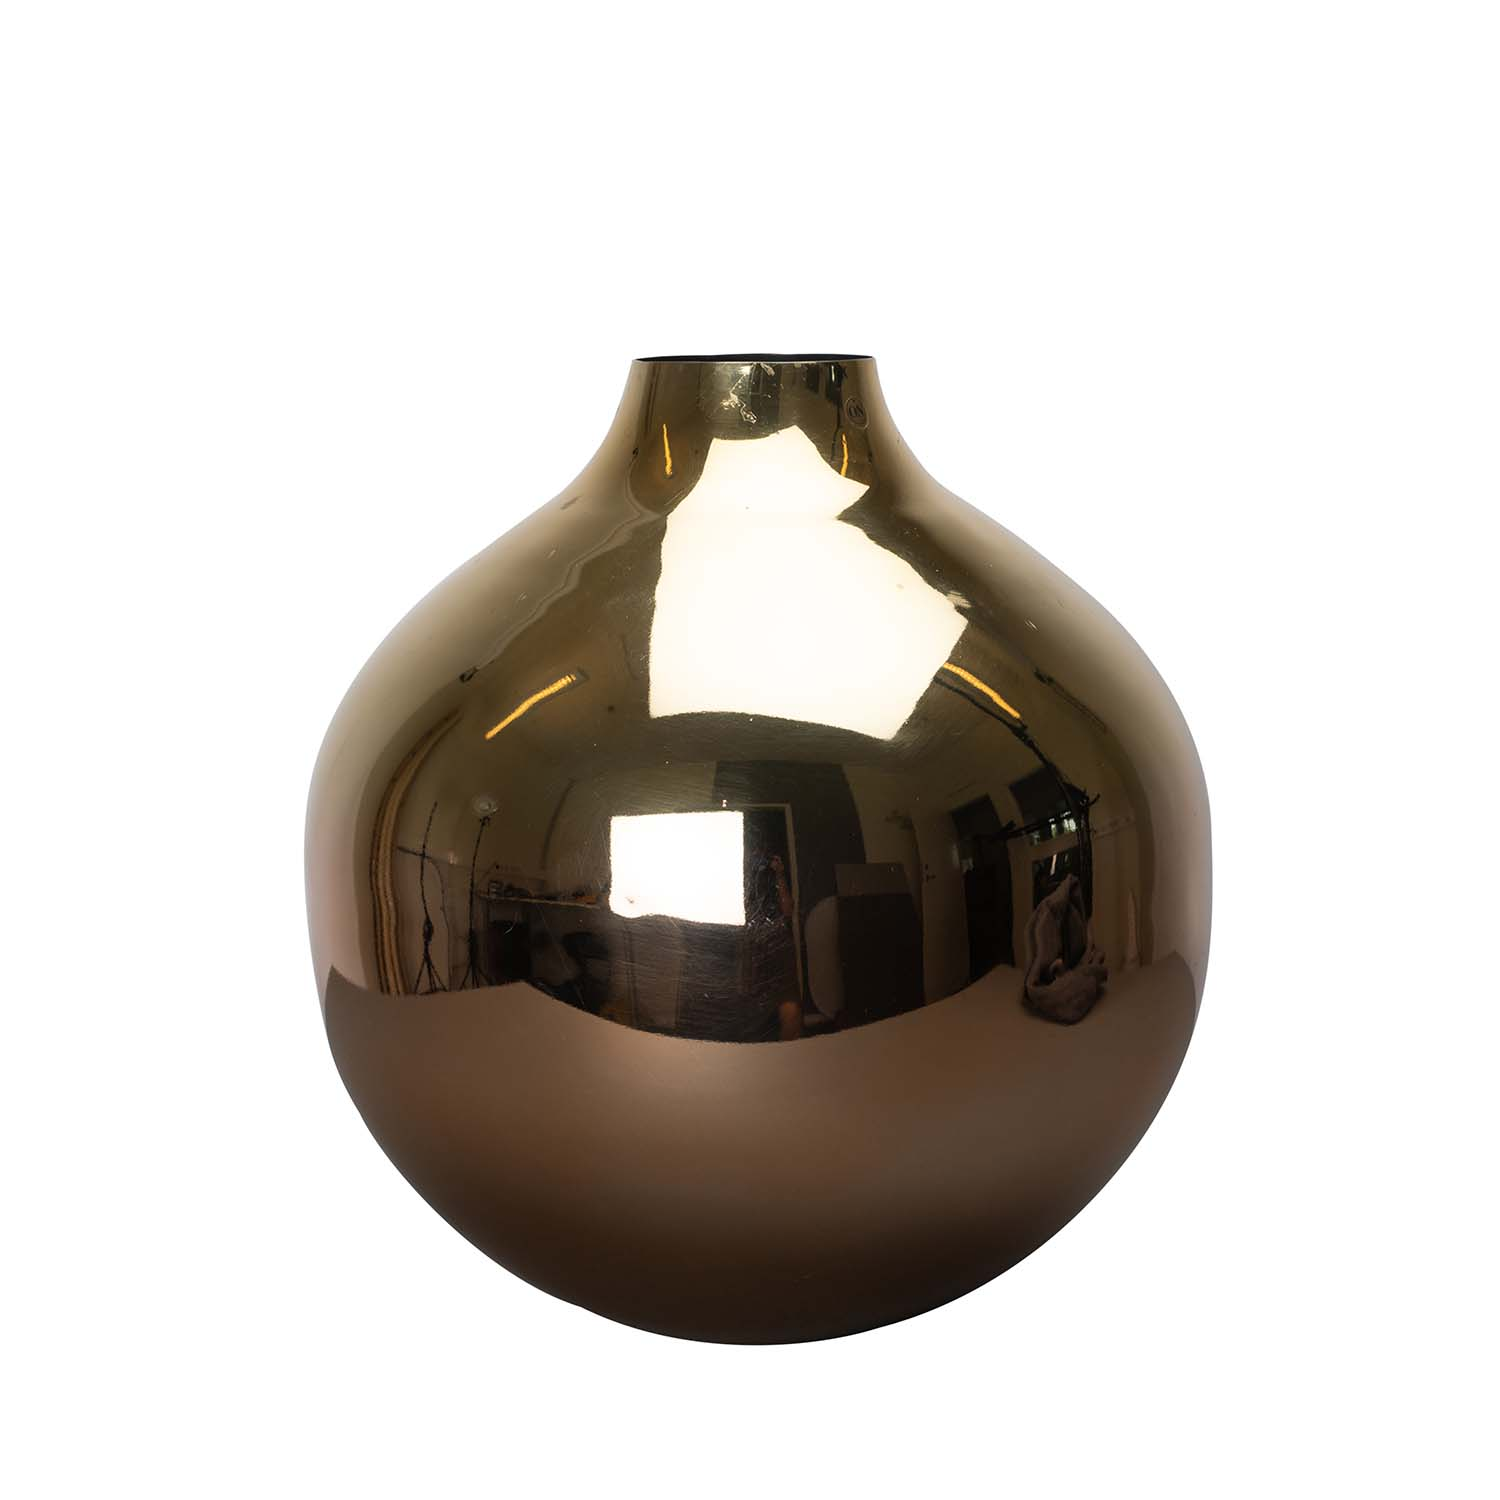 Bilde av By On-Glow Vase, Messing/Kobber